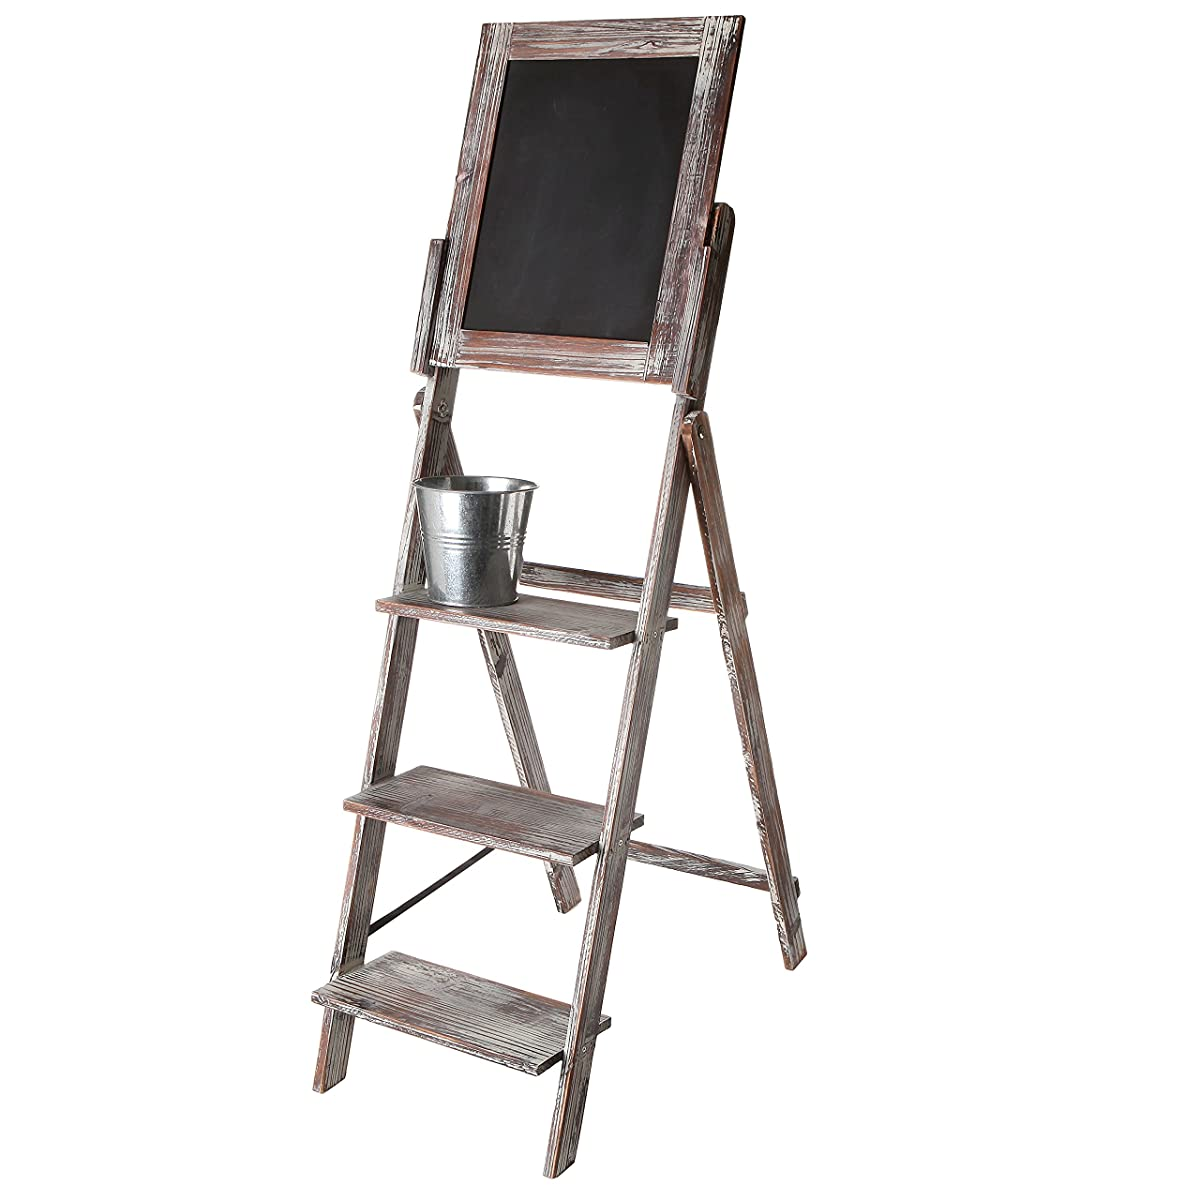 MyGift Decorative Torched Wood Easel Style Chalkboard Stand with 3 Tier Display Shelves